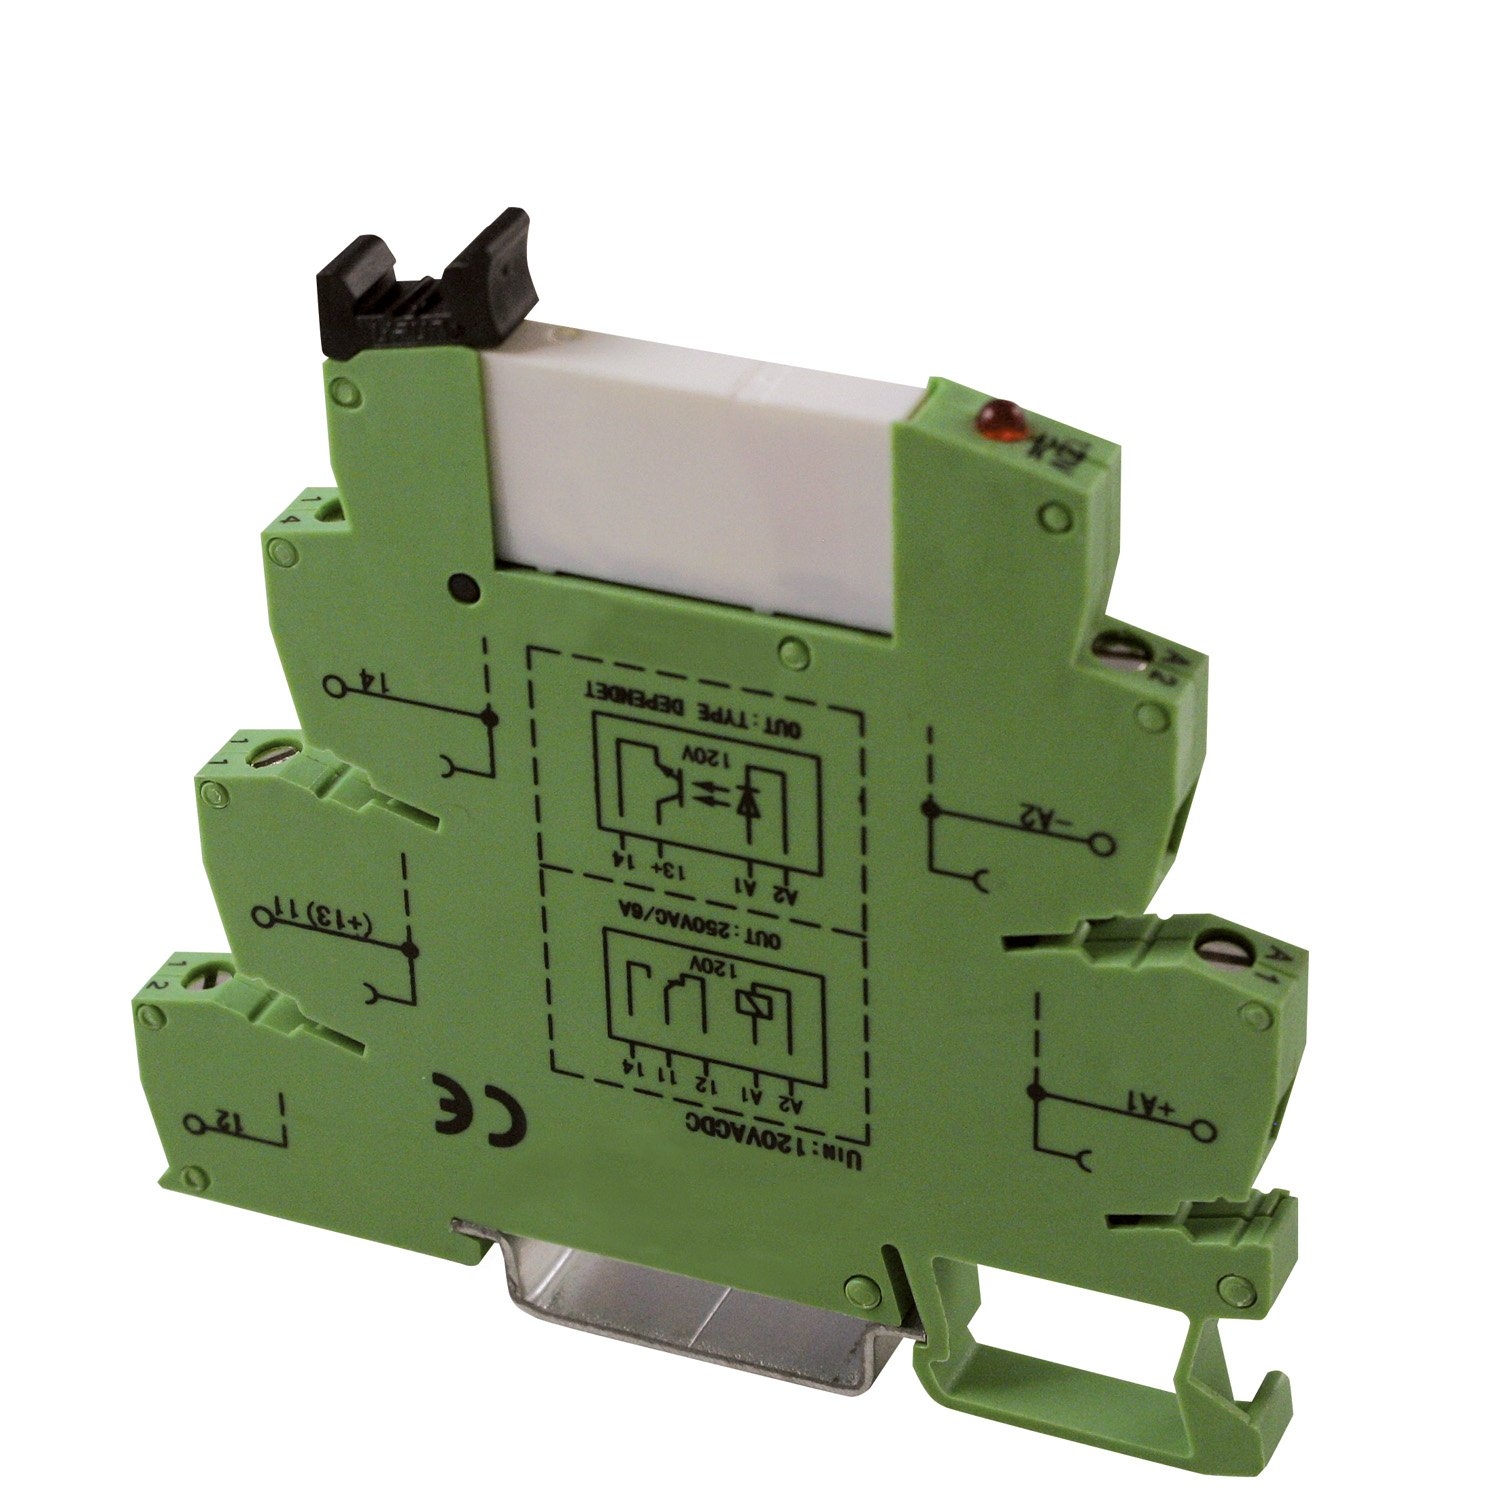 ASI ASI328040 ASIUDK-PLC-RI120Vac/dcE Pluggable SPDT Relay with Low Profile DIN Rail Mount Screw Clamp Terminal Base, 6 amp, 250 VAC, 120 VAC/DC Coil